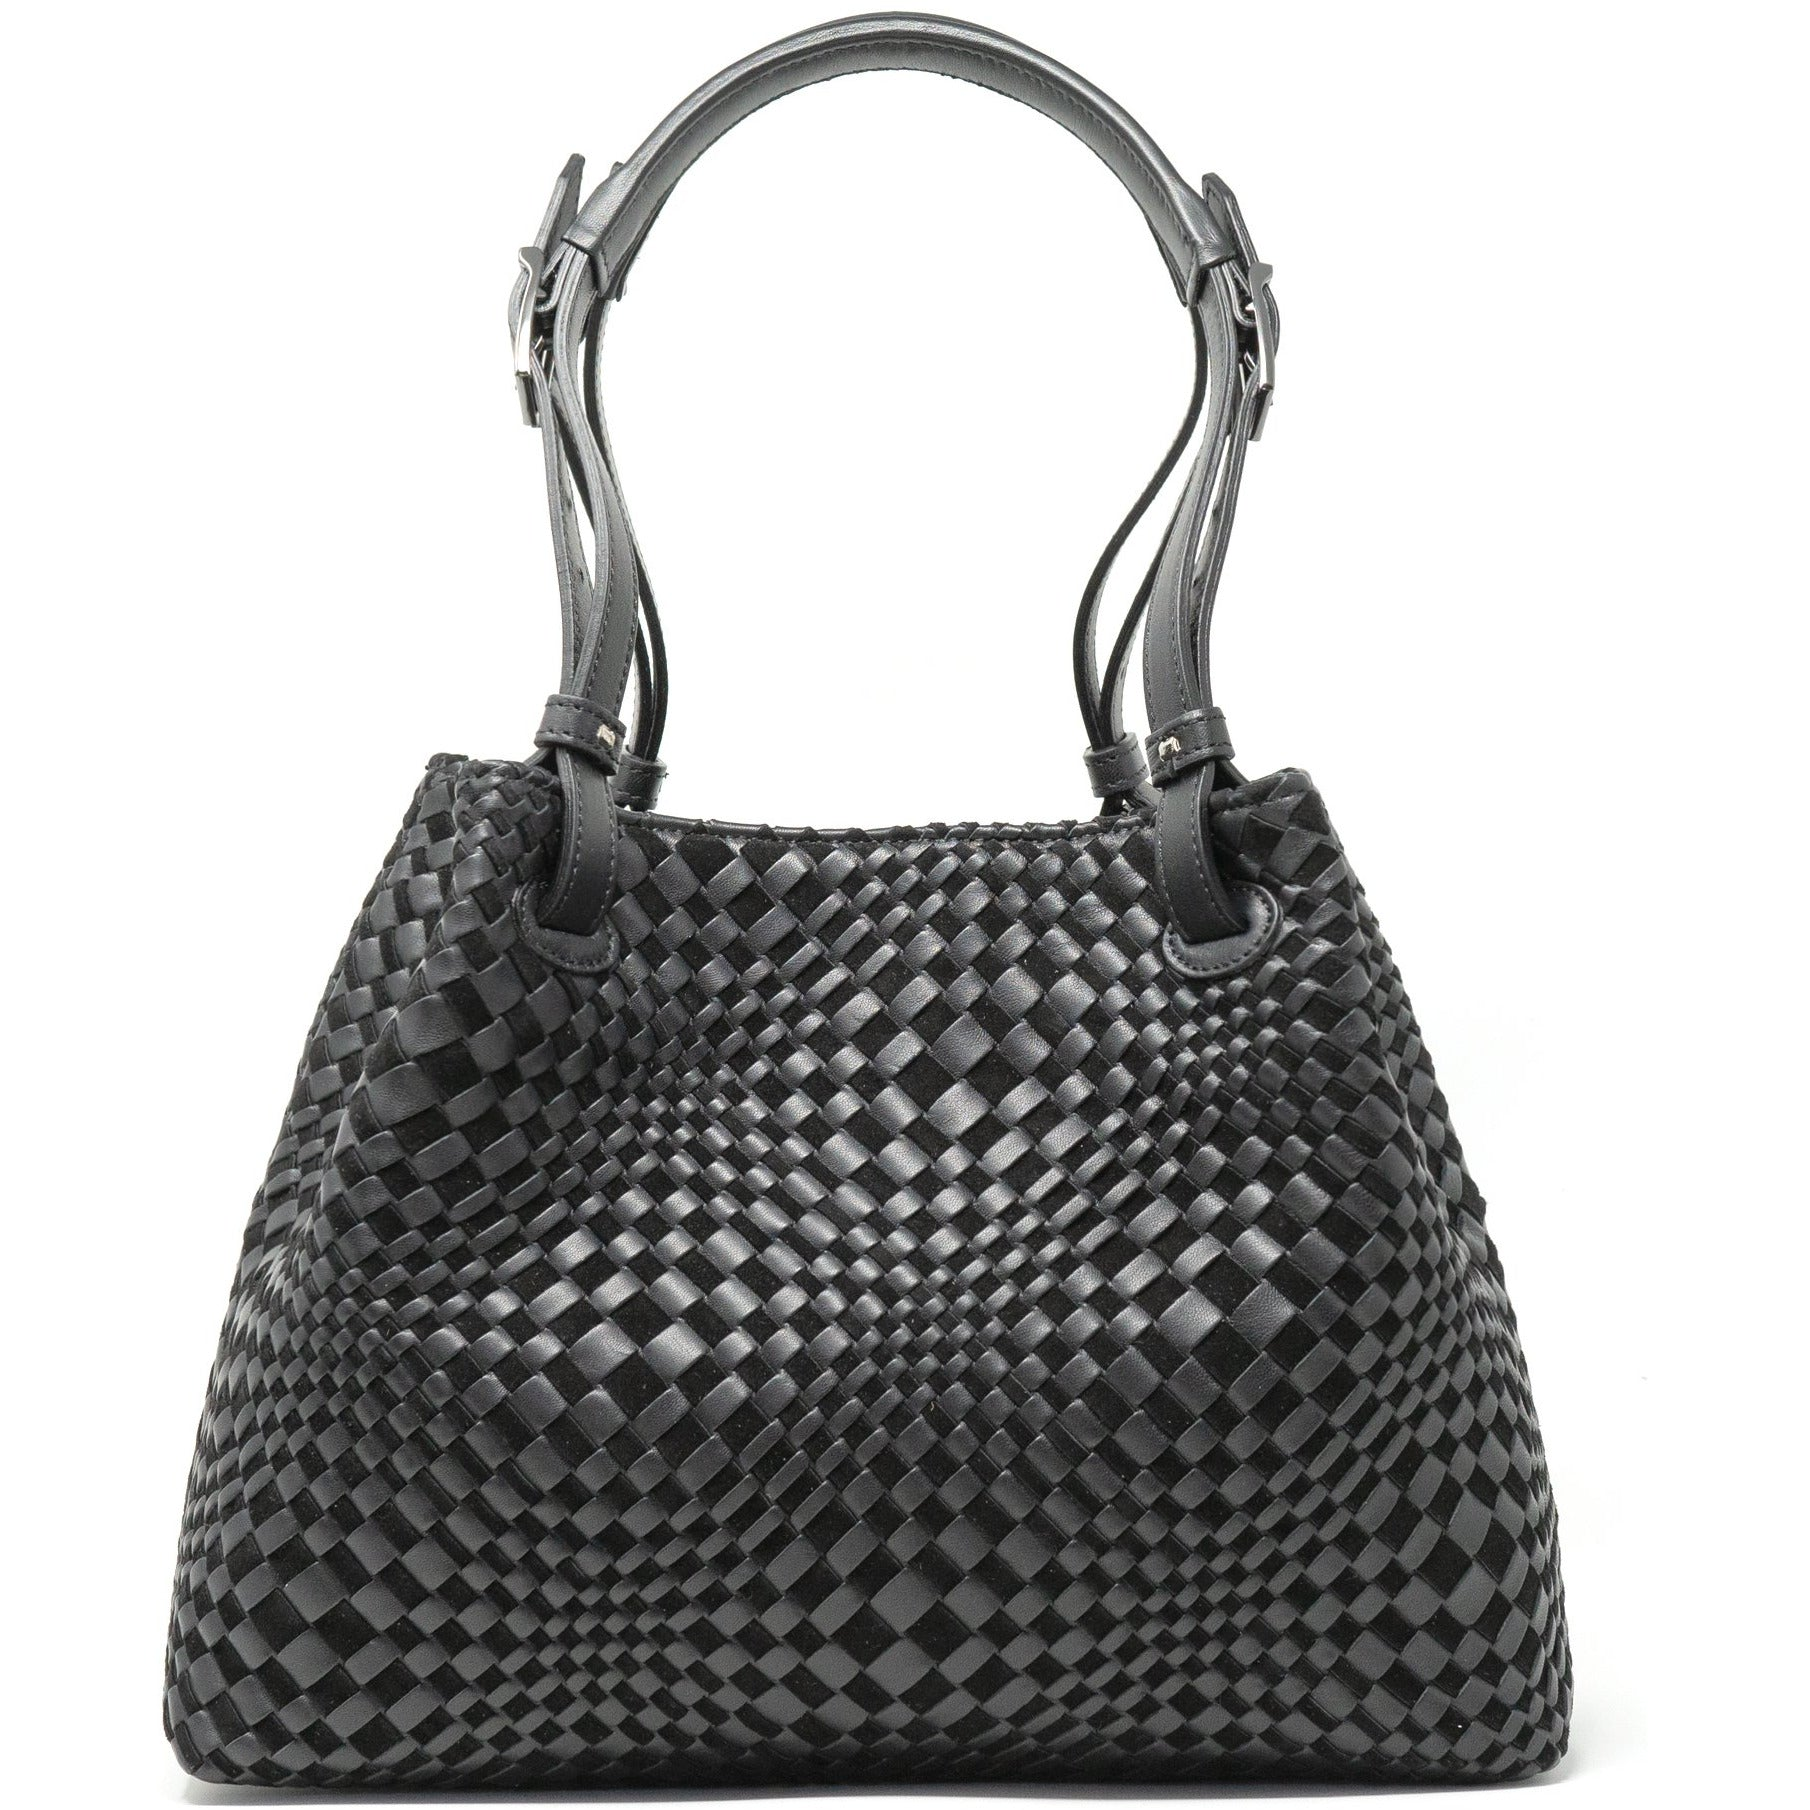 Alessia SM Women Leather Intrecciato Shoulder Bag in Black - Jennifer Tattanelli